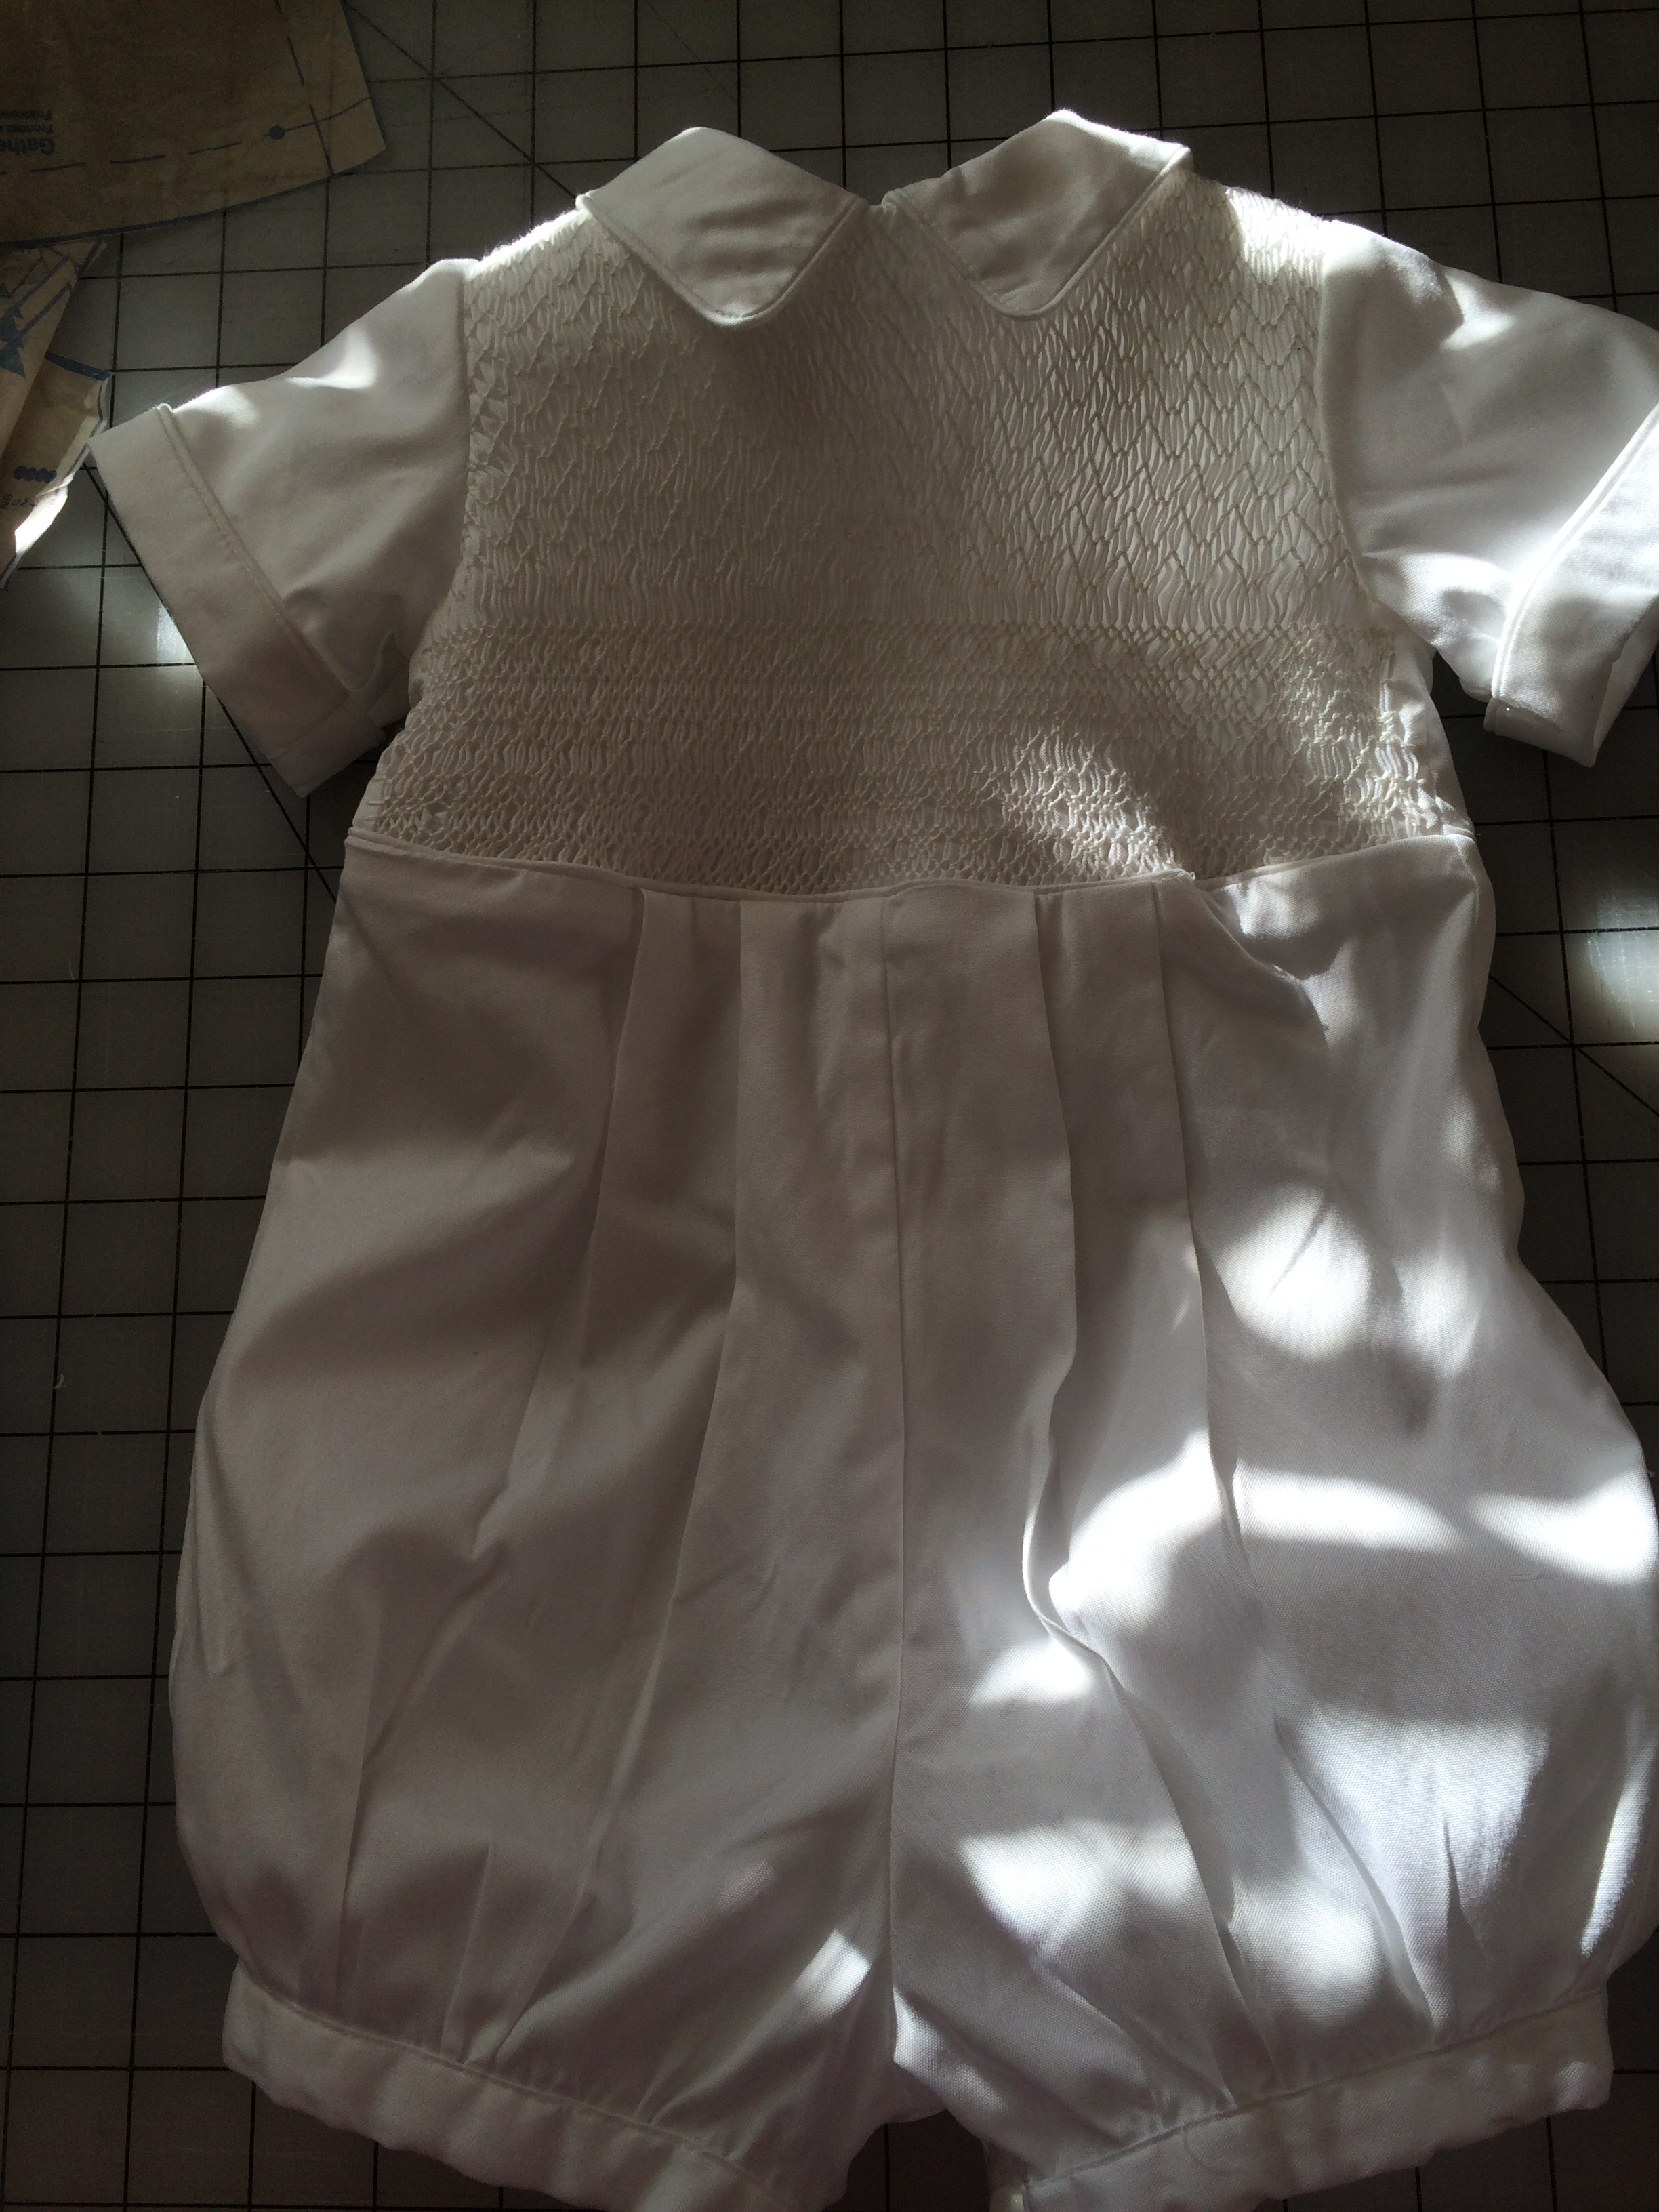 Smocked white baby outfit.